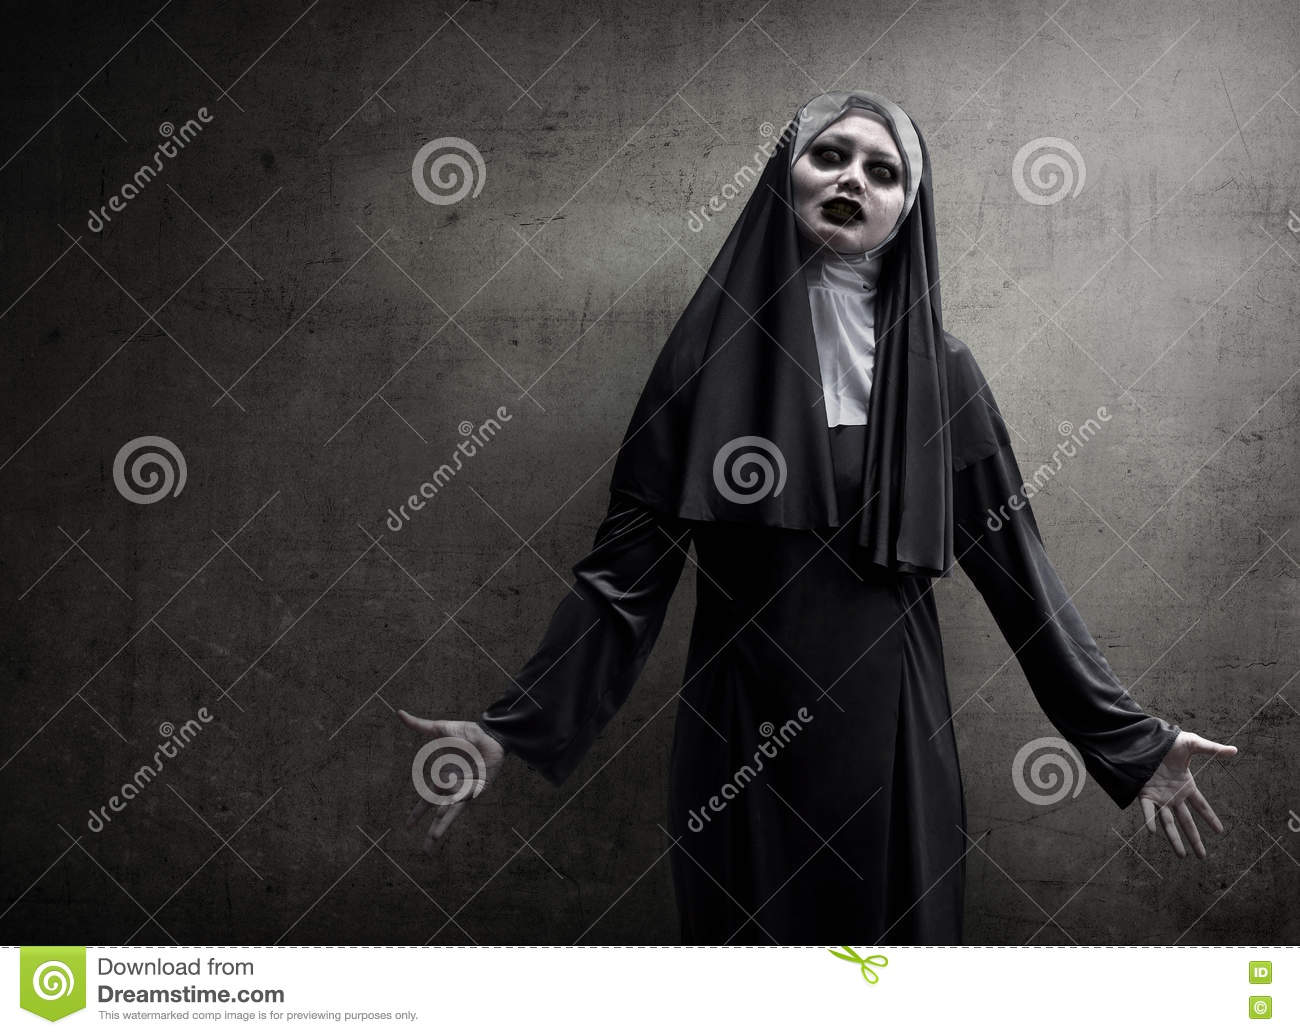 evil nun stock photos - royalty free images - dreamstime